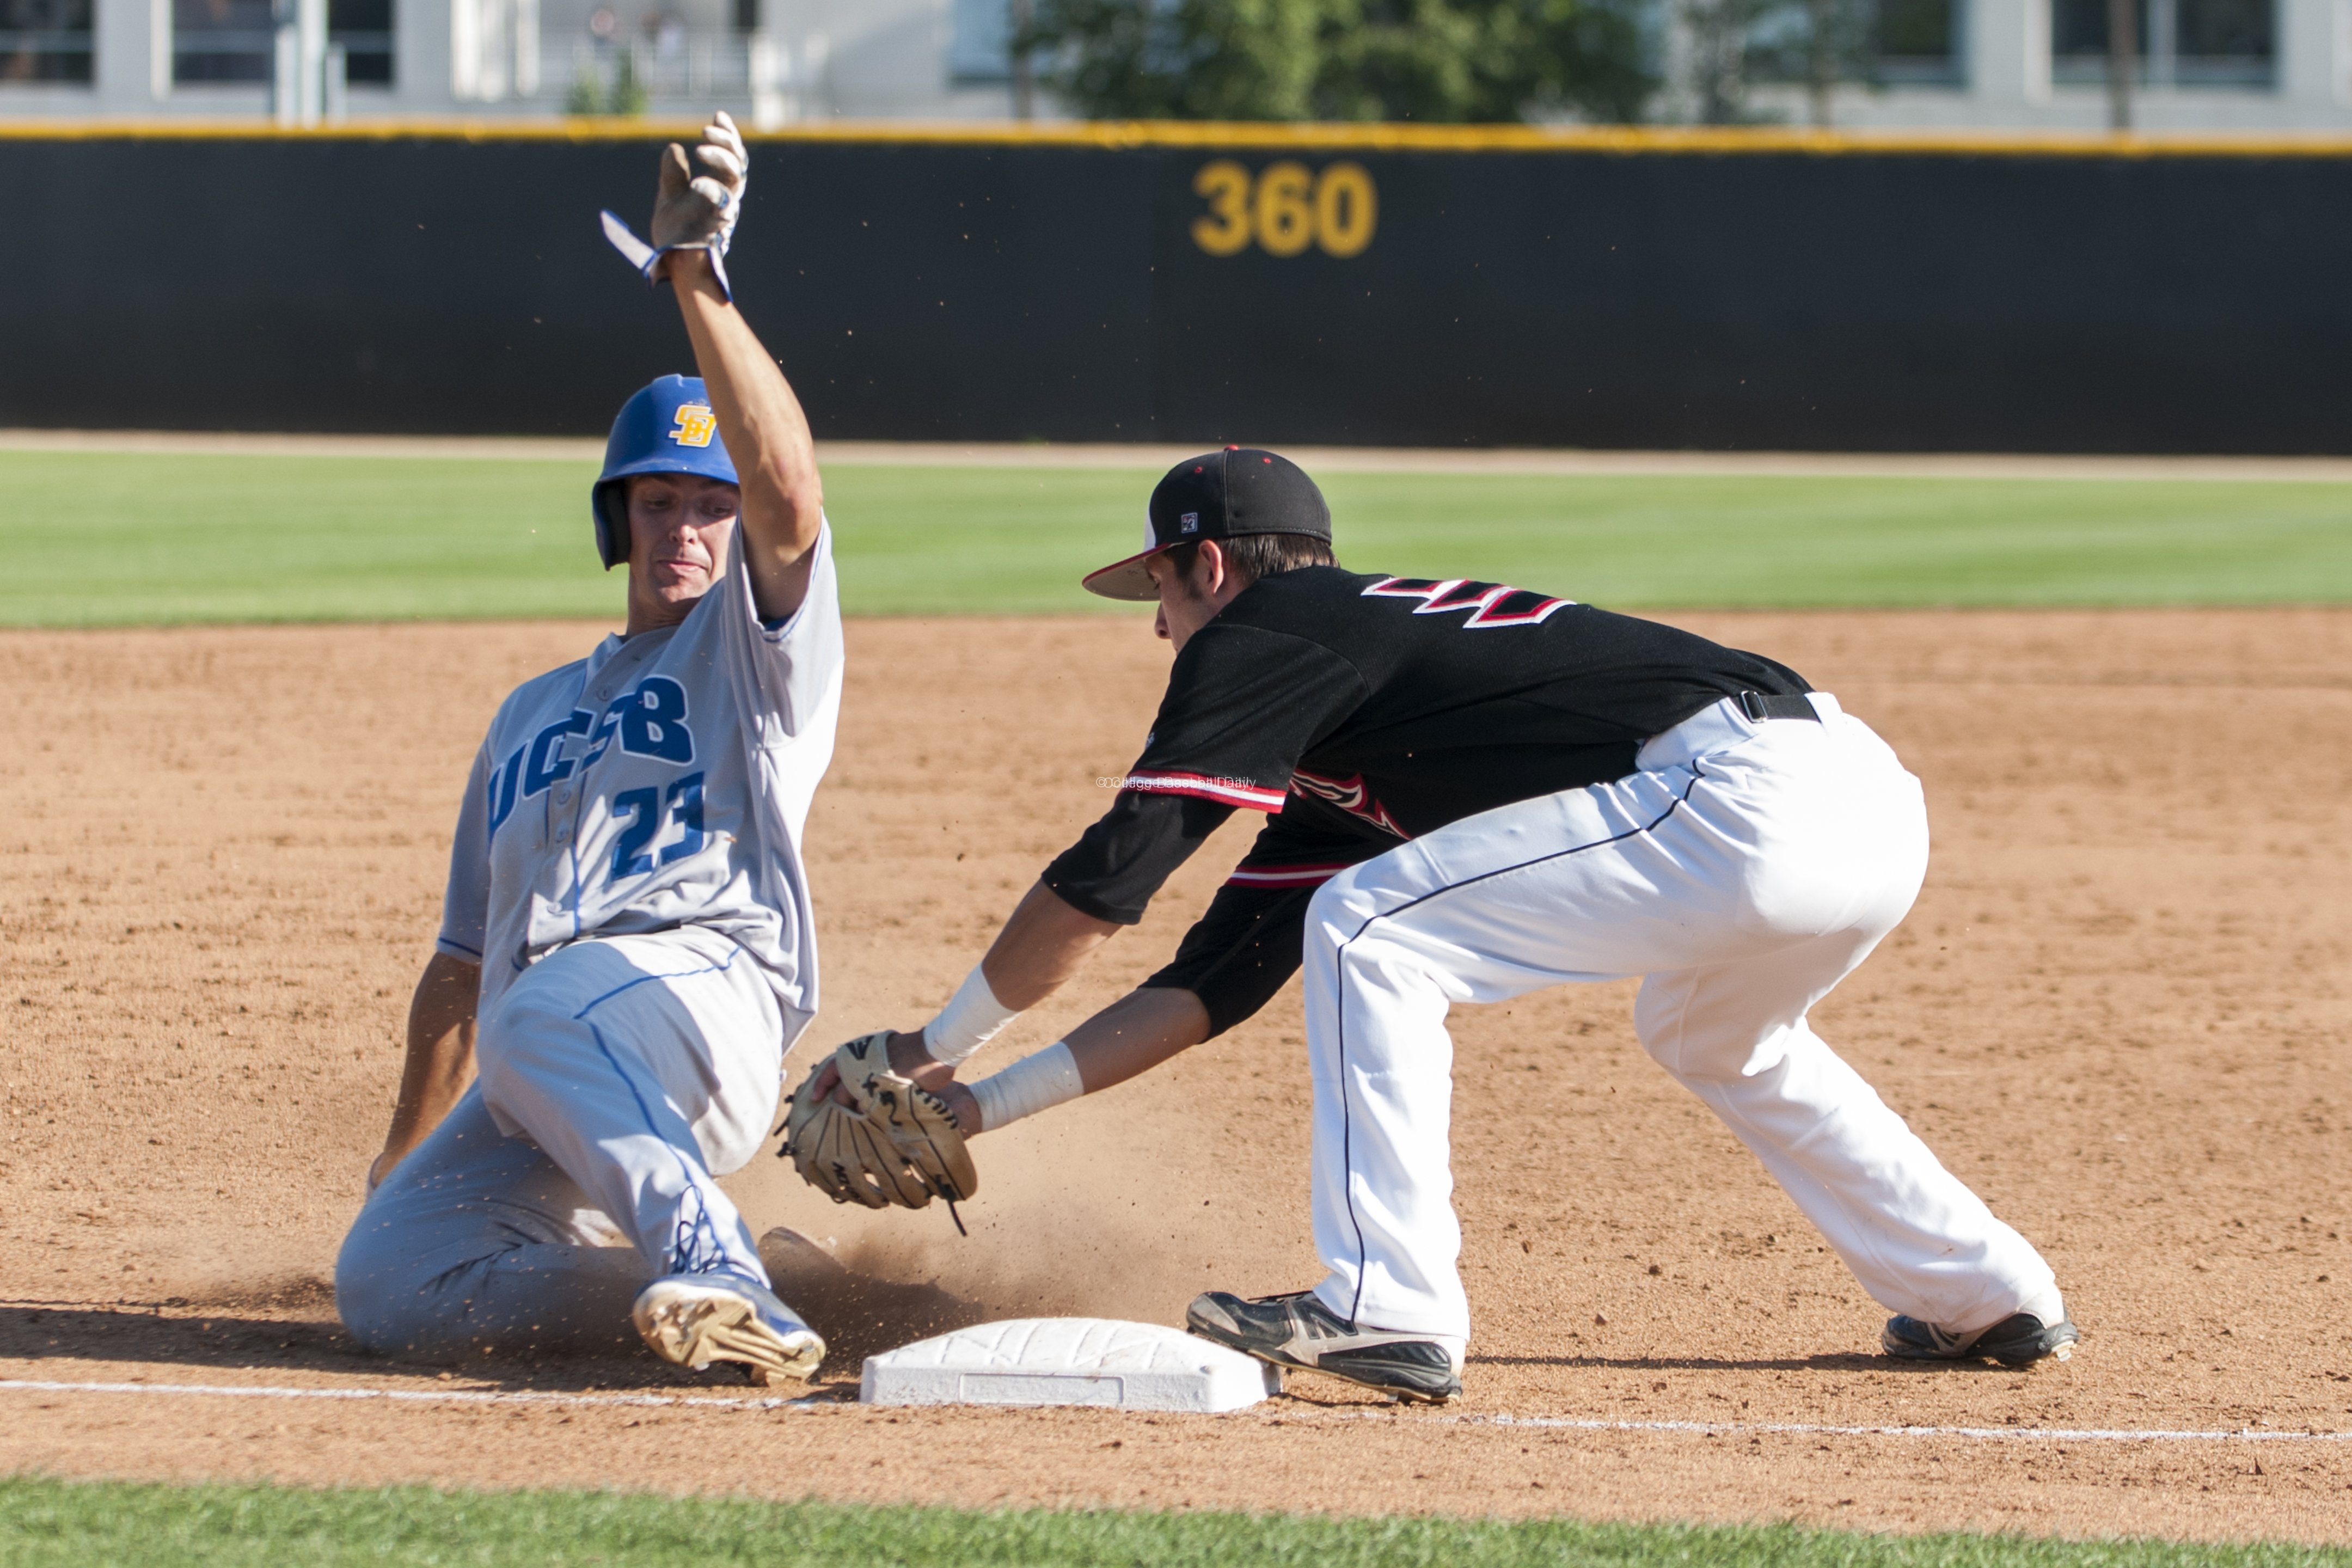 Joey Epperson is throw out at third base.